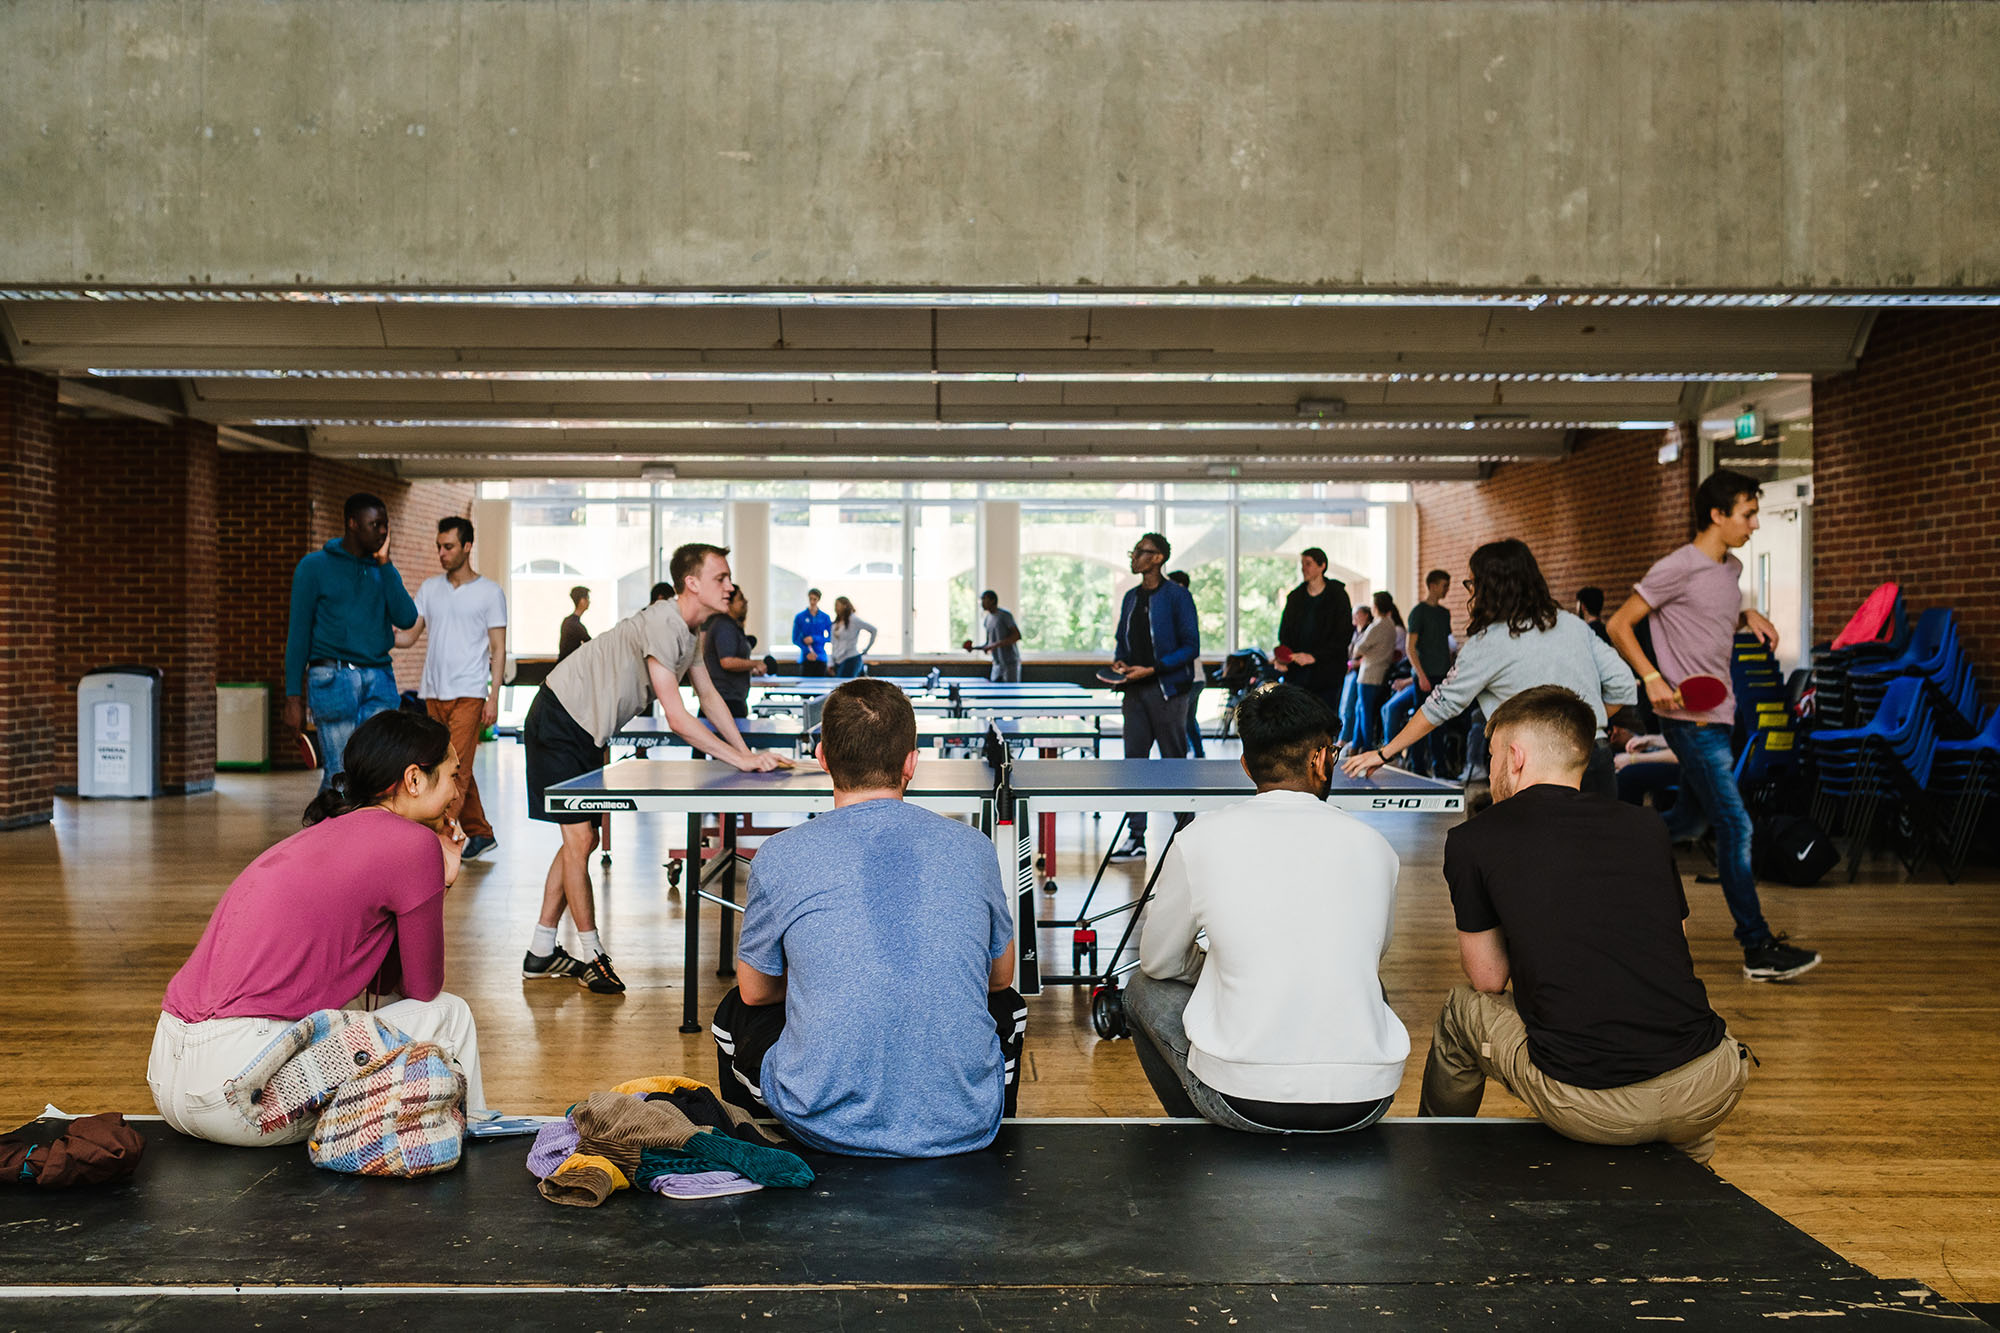 table tennis active US